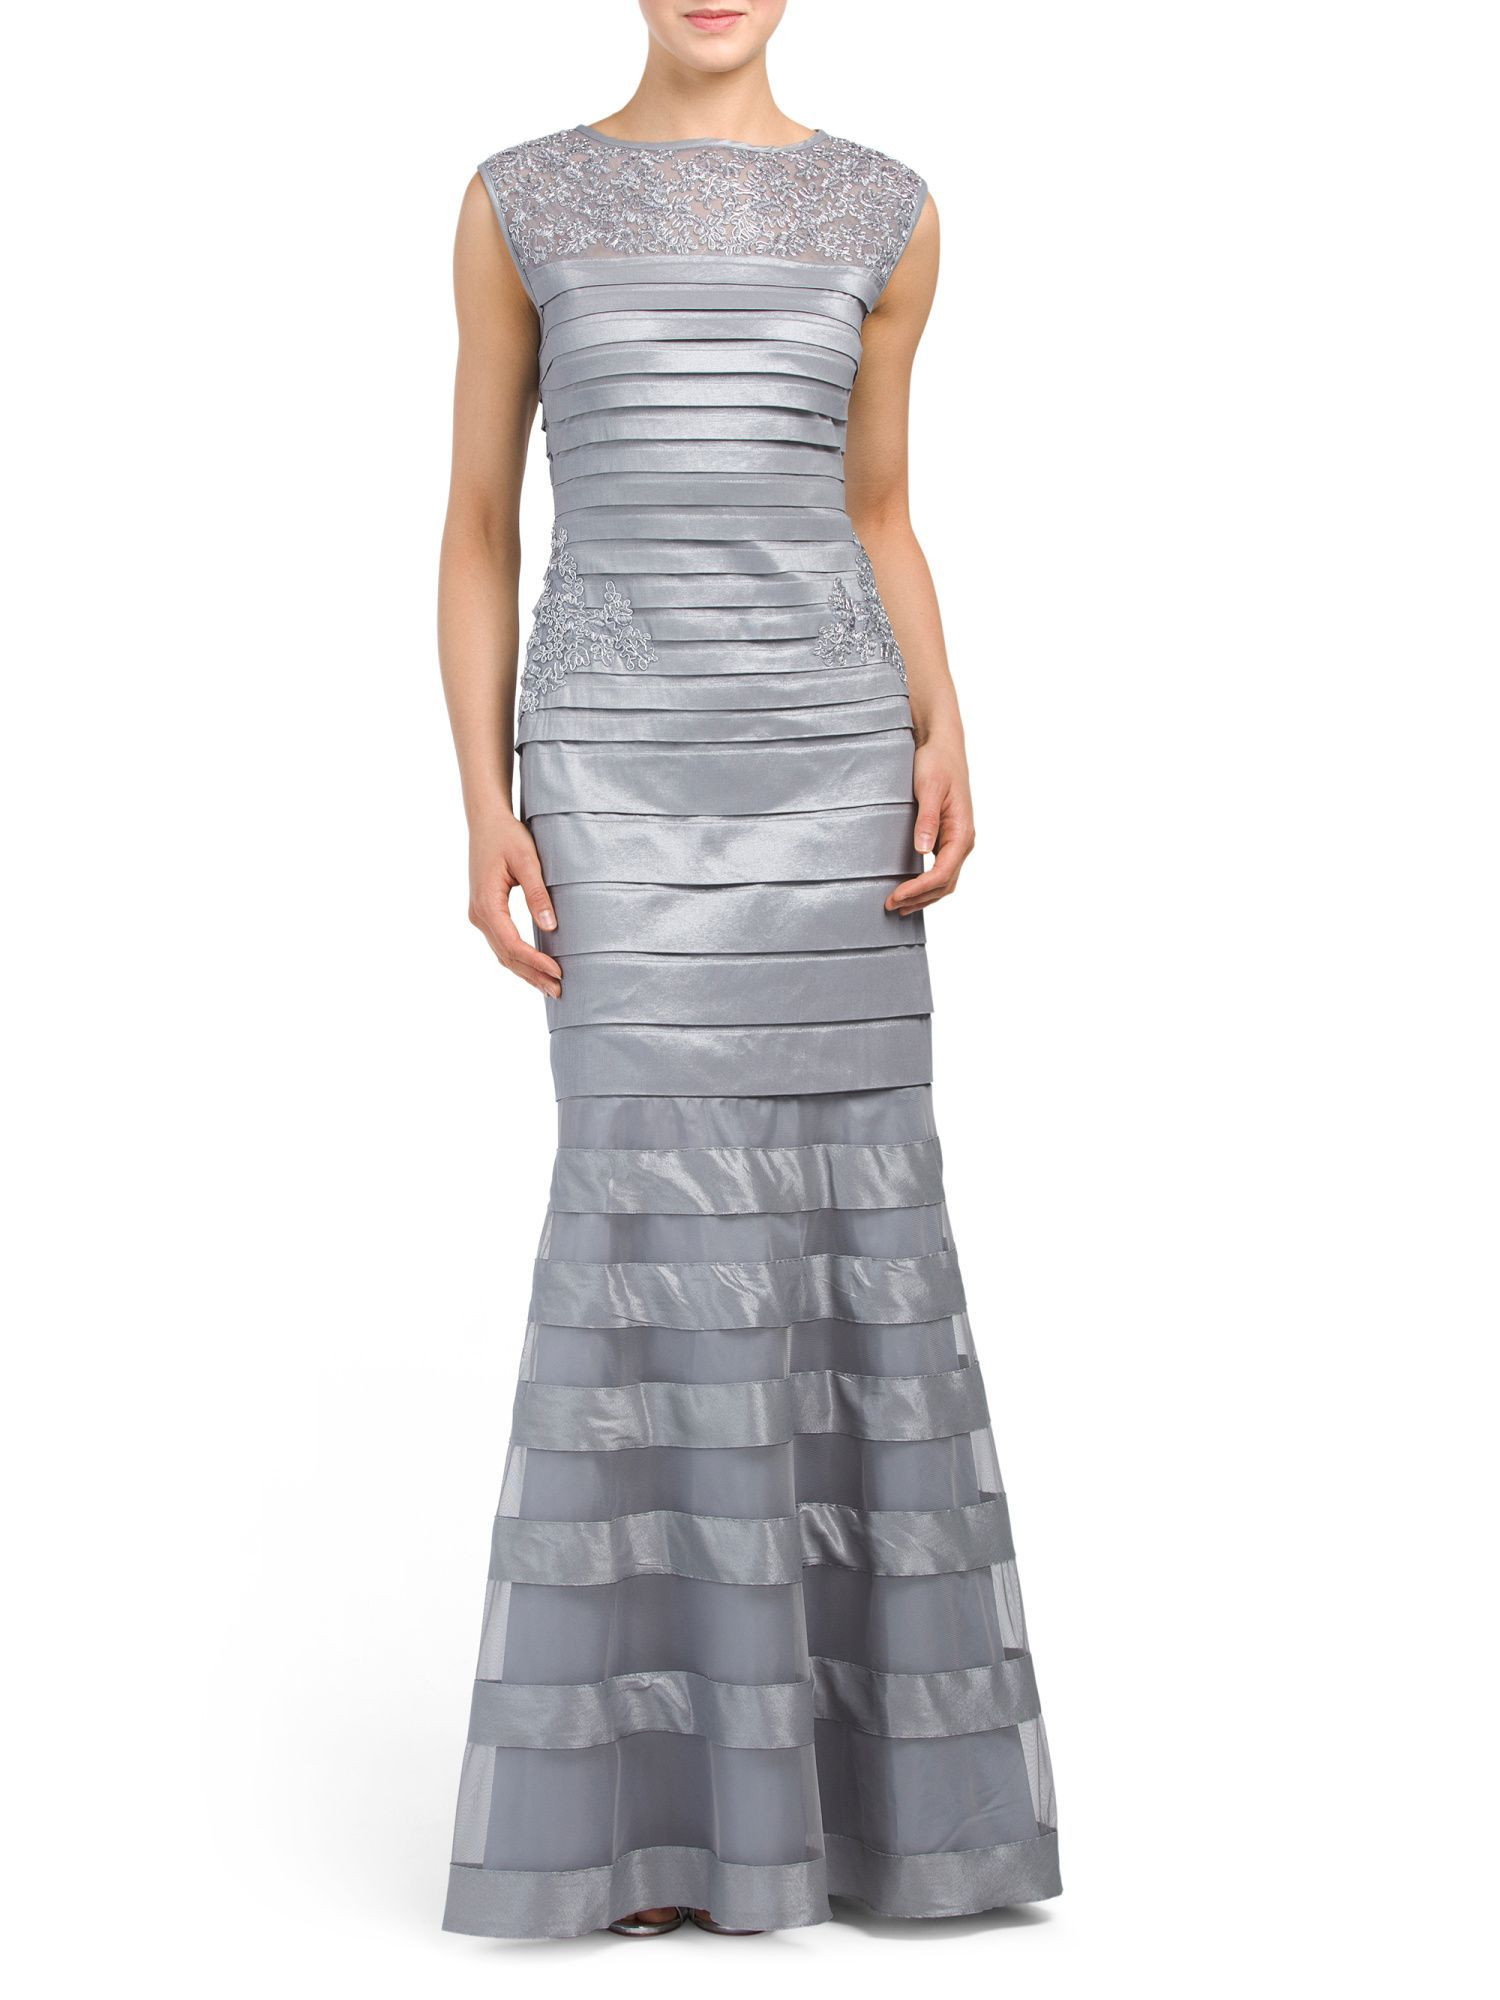 ad0bd65f547 Sleeveless Sateen Striped Gown. Sleeveless Sateen Striped Gown Tj Maxx